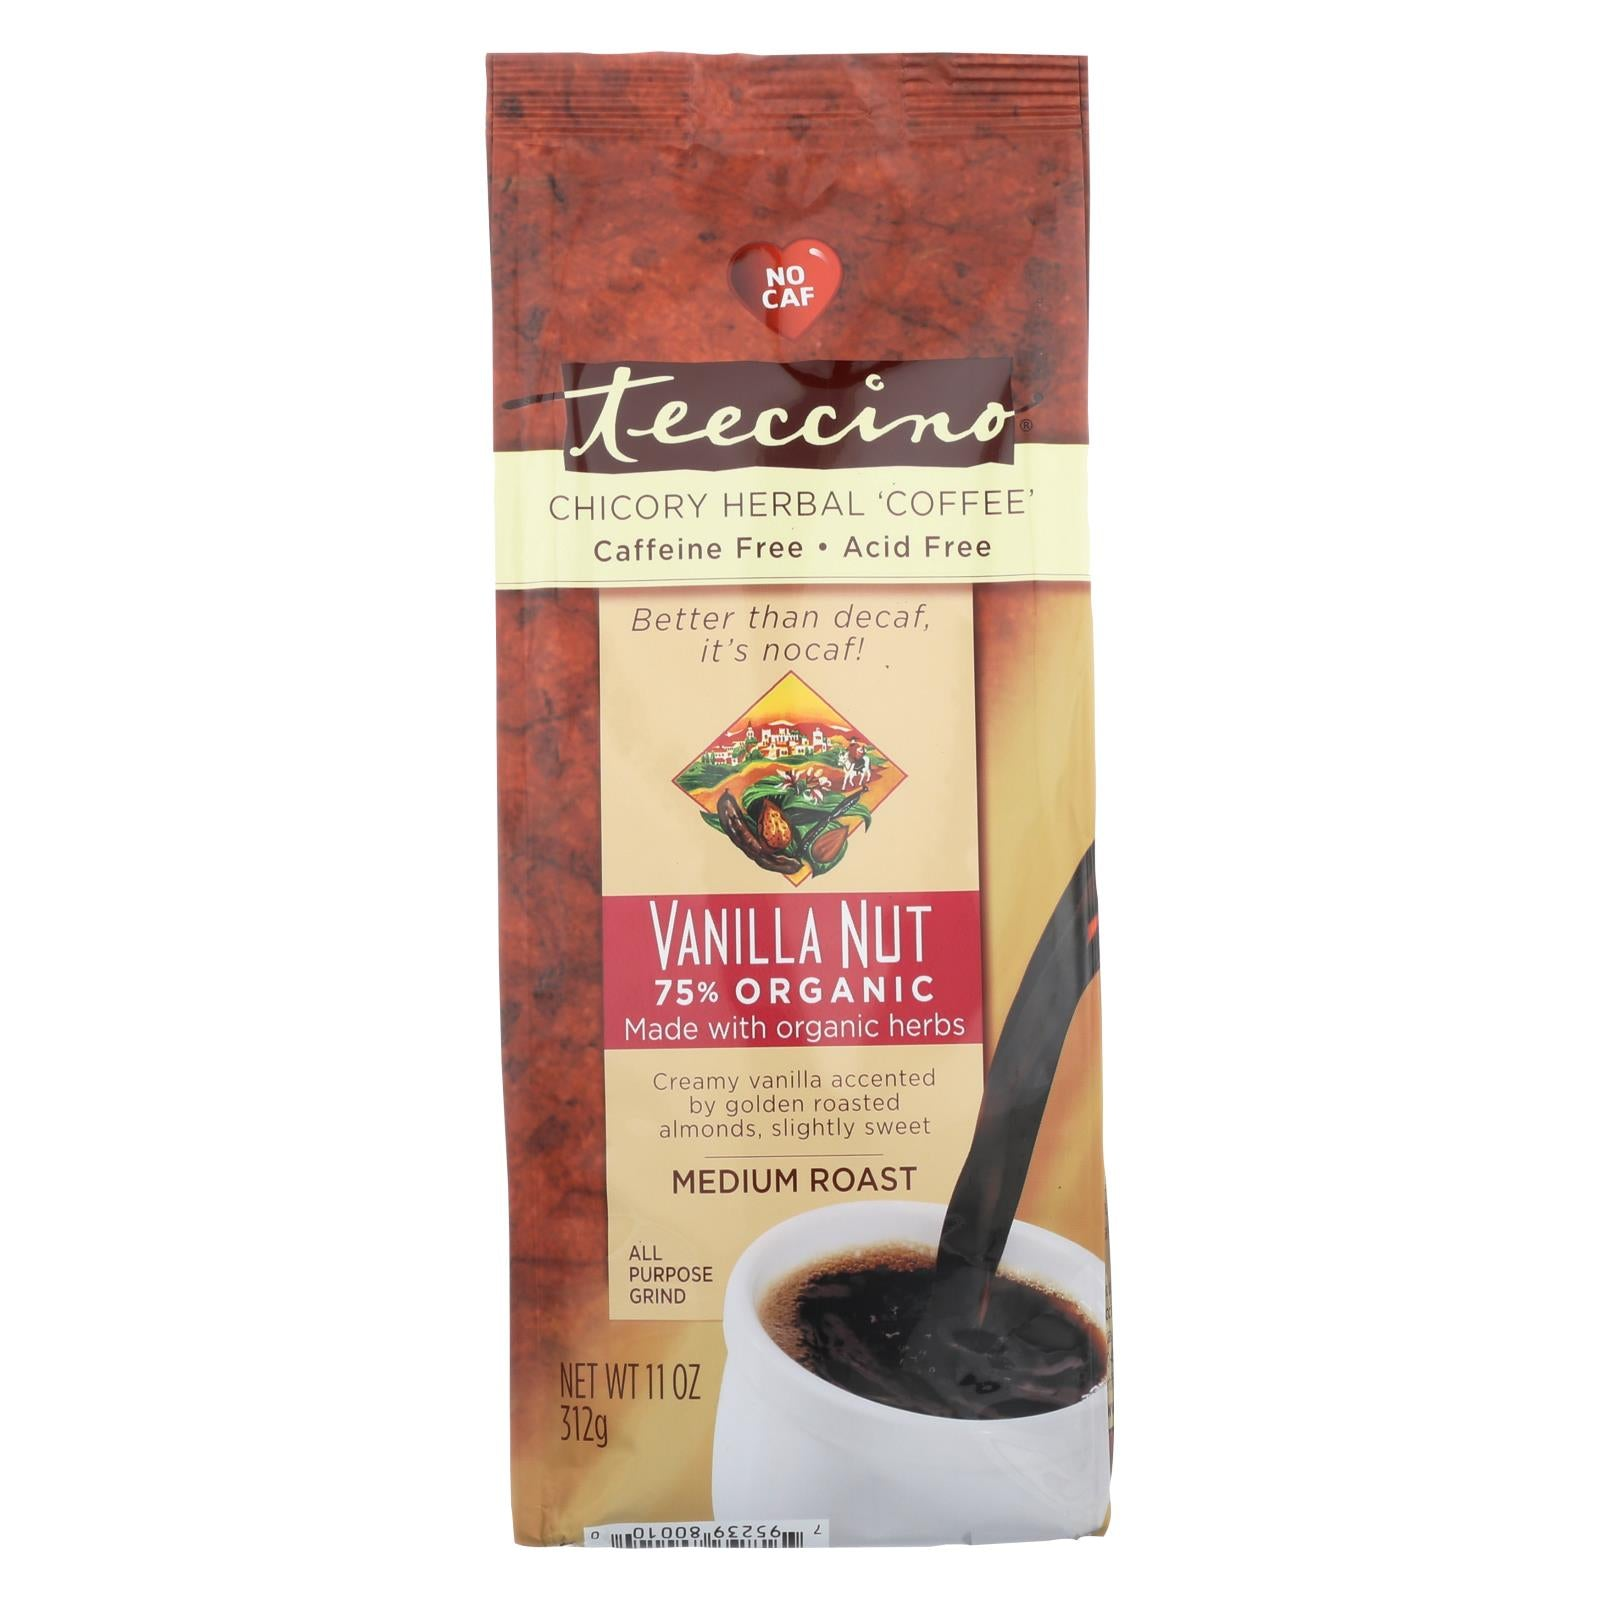 Buy Teeccino Mediterranean Herbal Coffee - Medium Roast - Caffeine Free - Vanilla Nut - 11 oz - Beverages from Veroeco.com